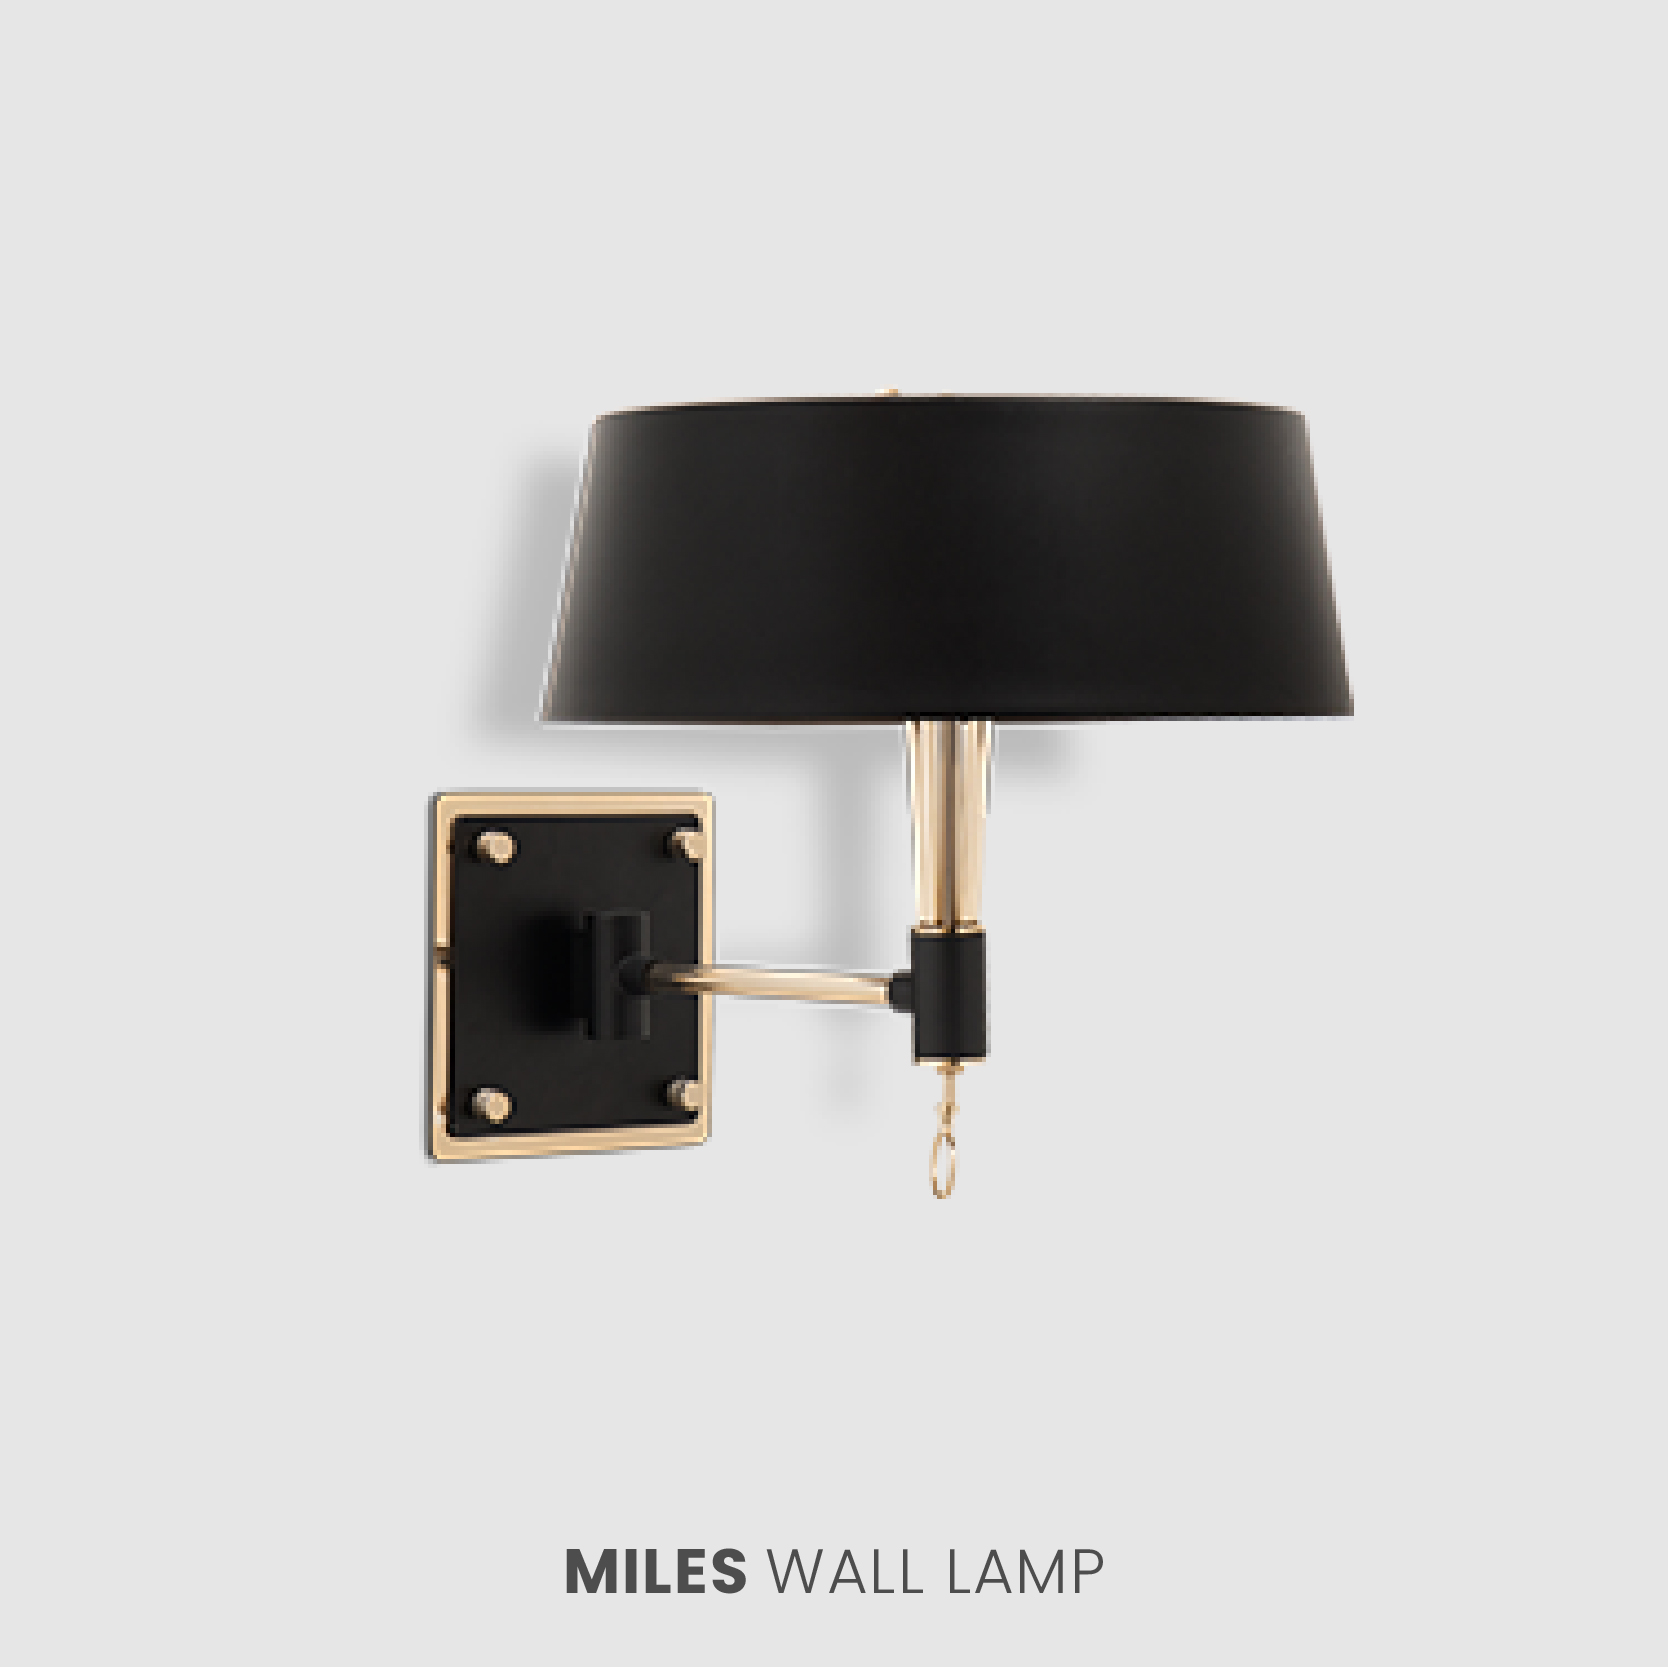 Miles Wall